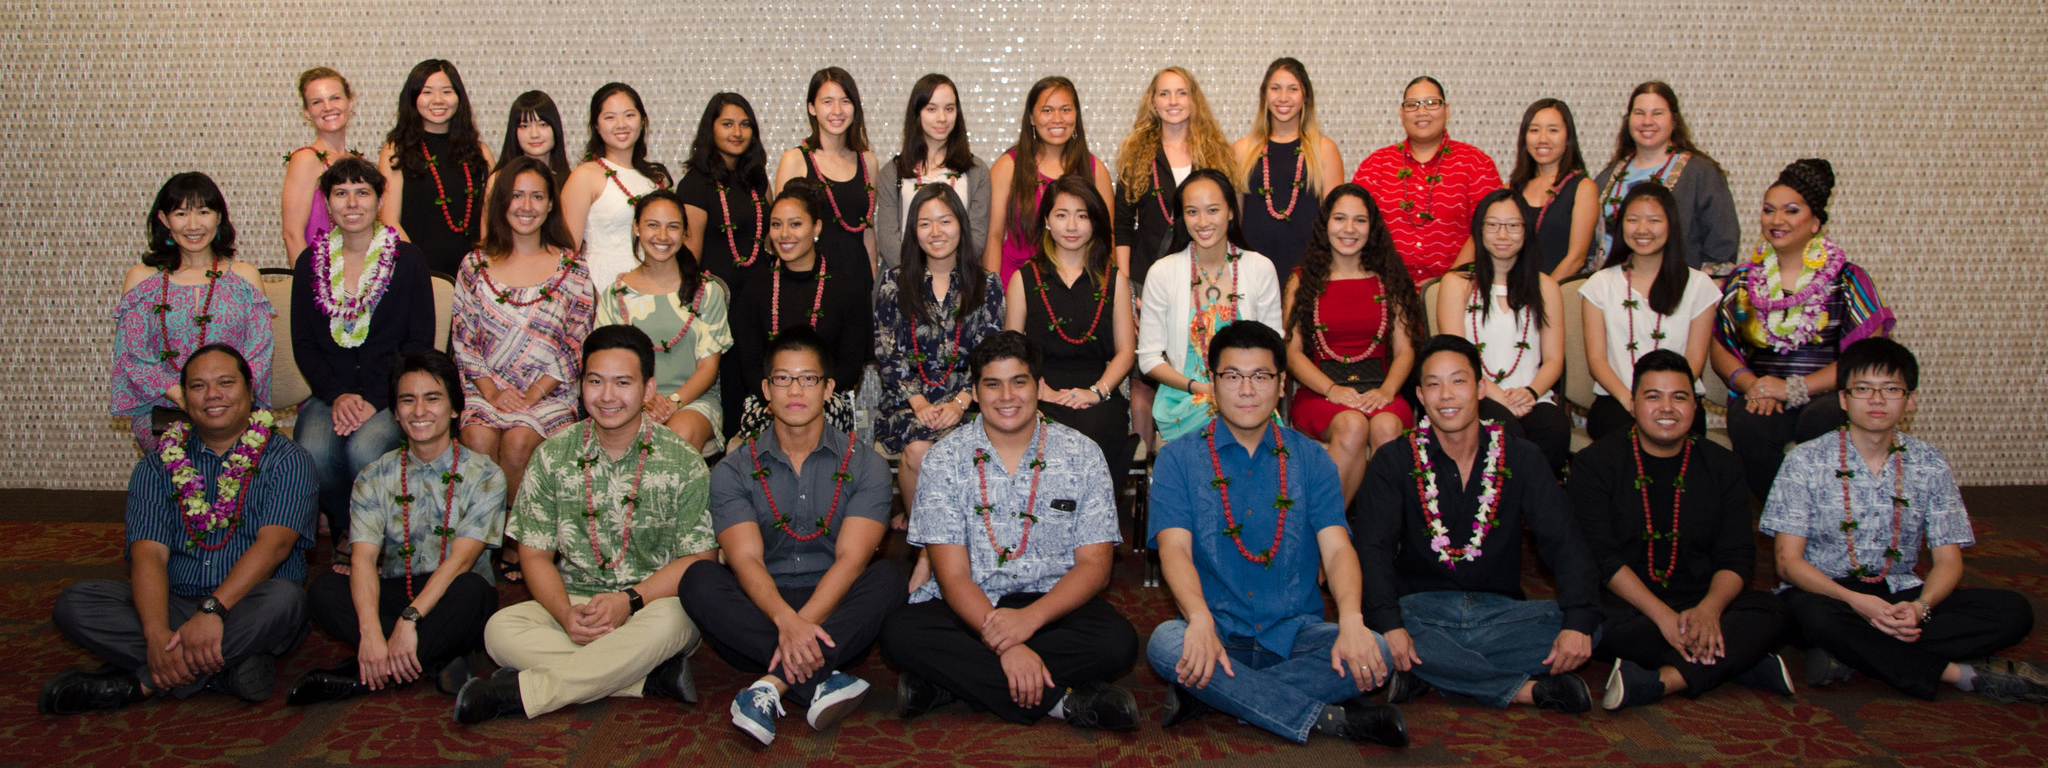 2017 Scholarship Recipients at CTAHR's Annual Awards Banquet